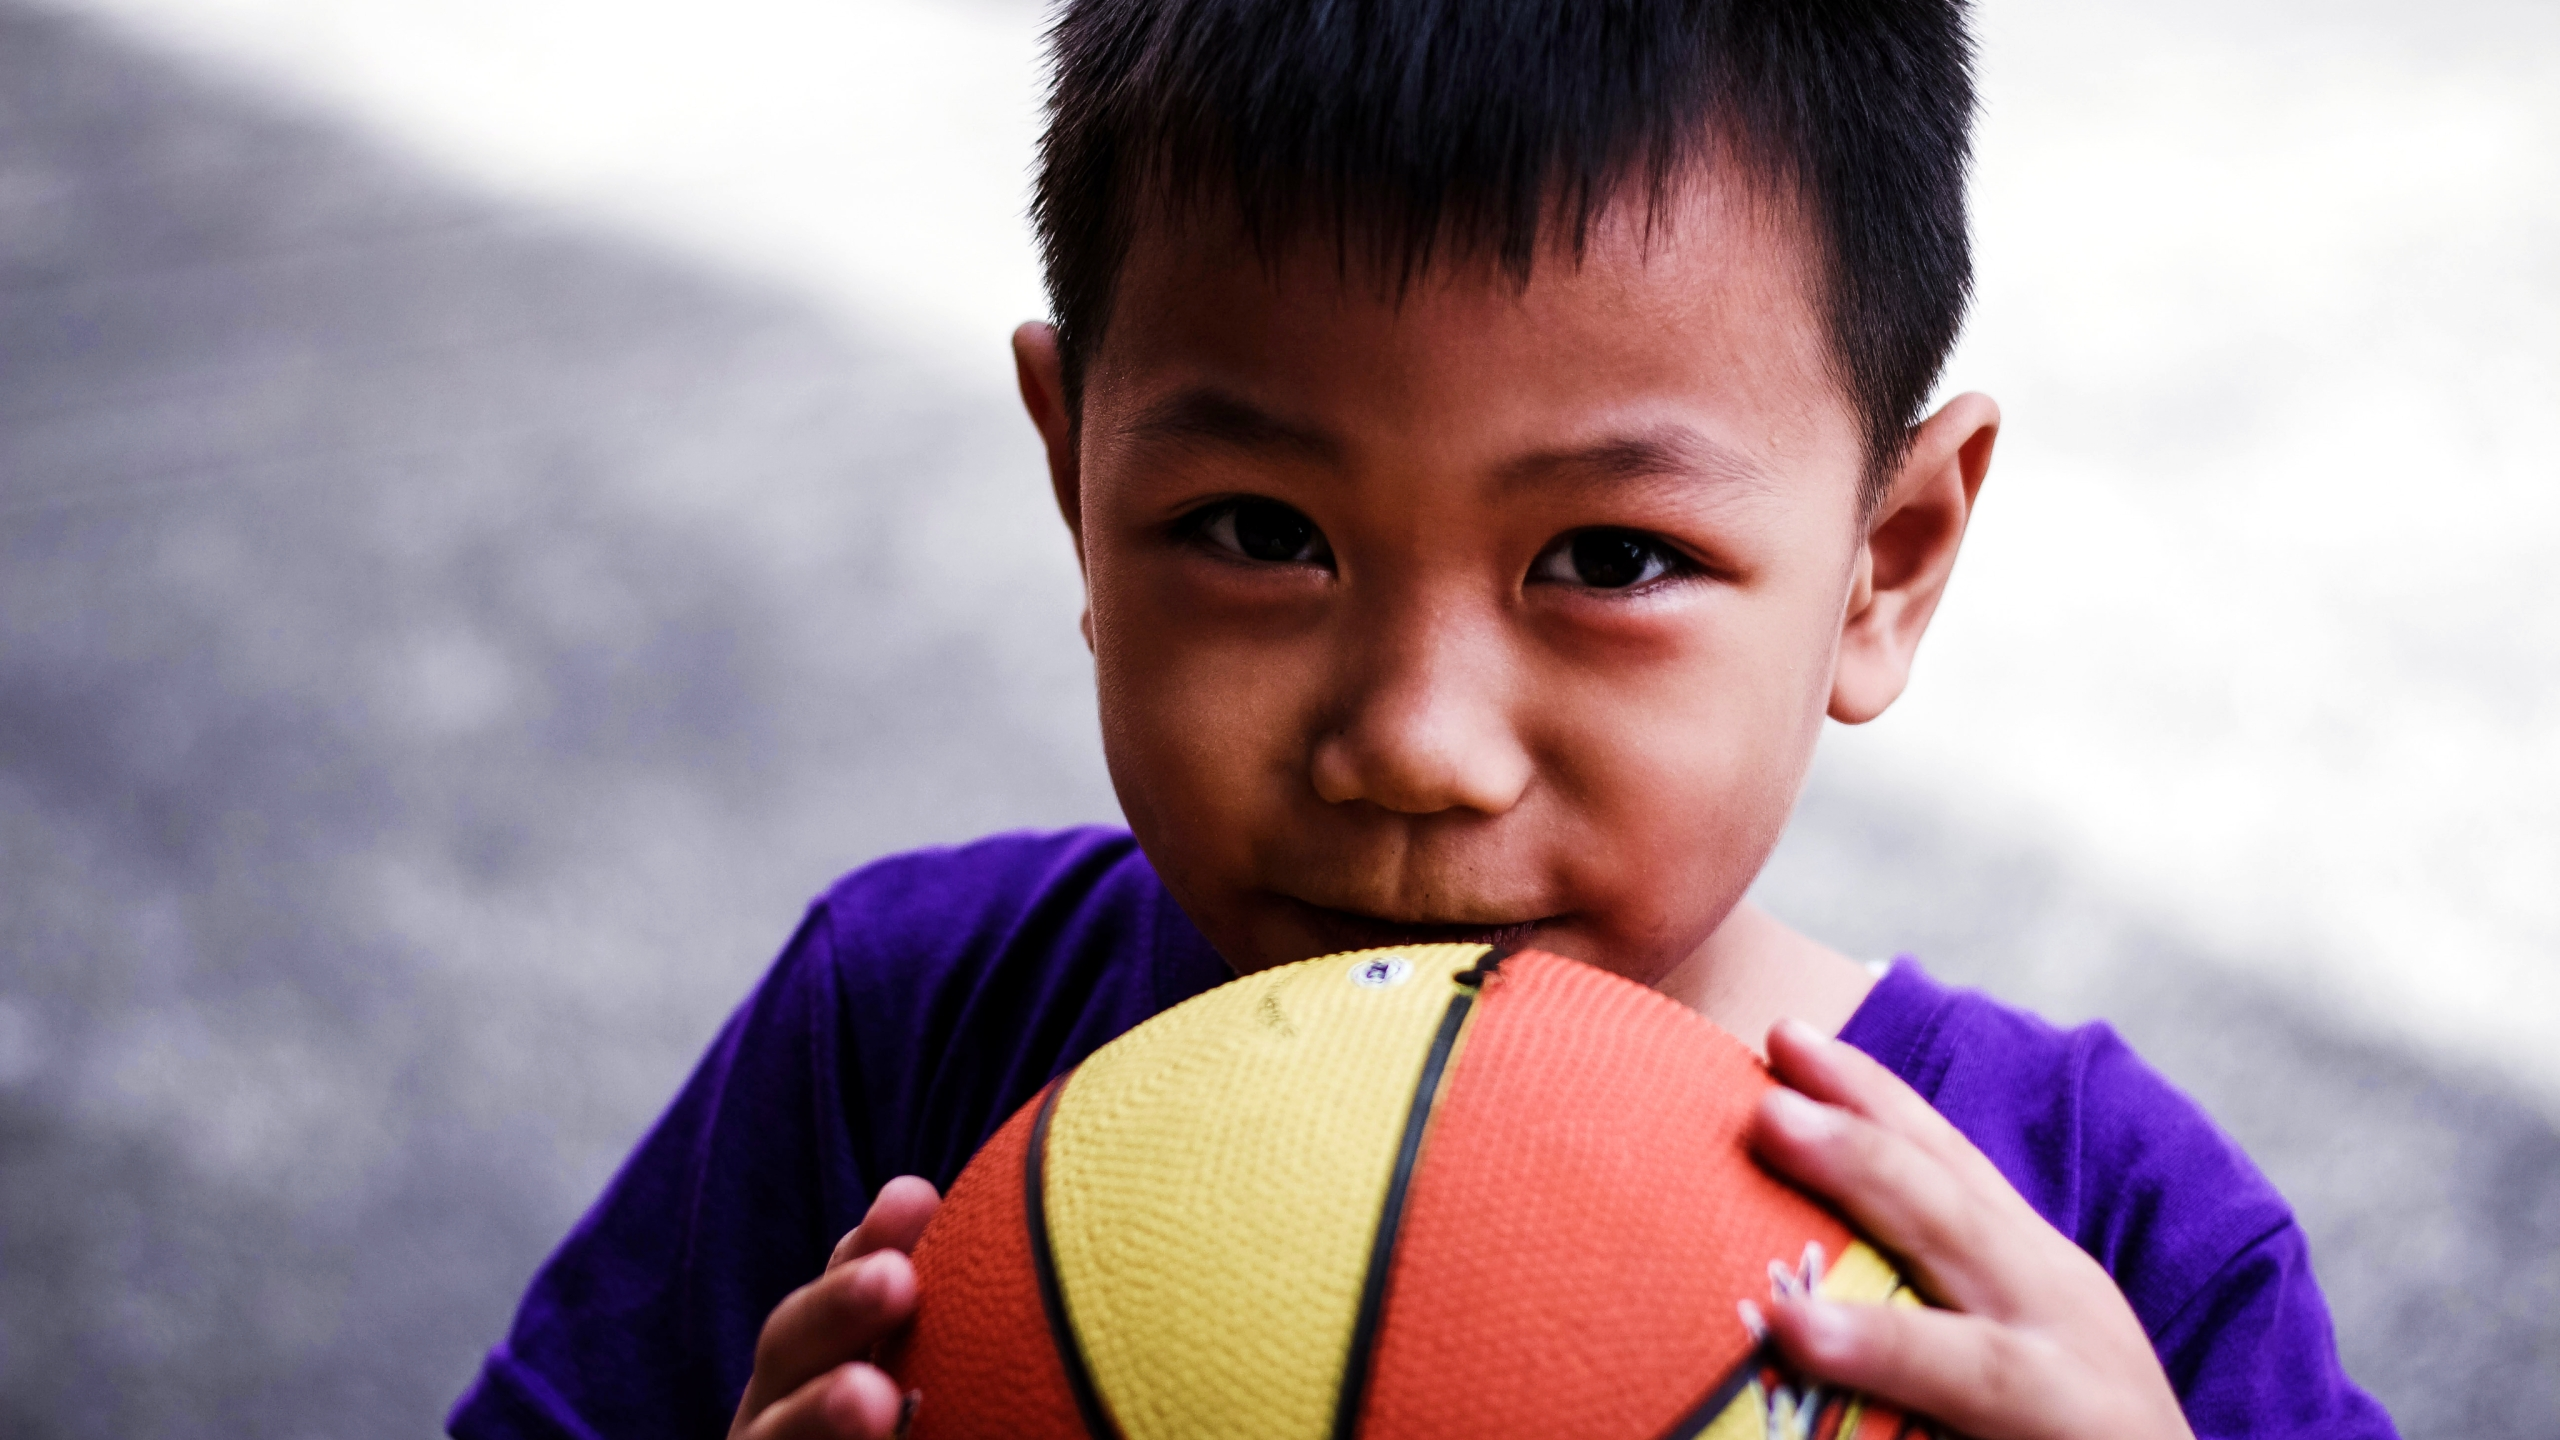 A kid with a basketball